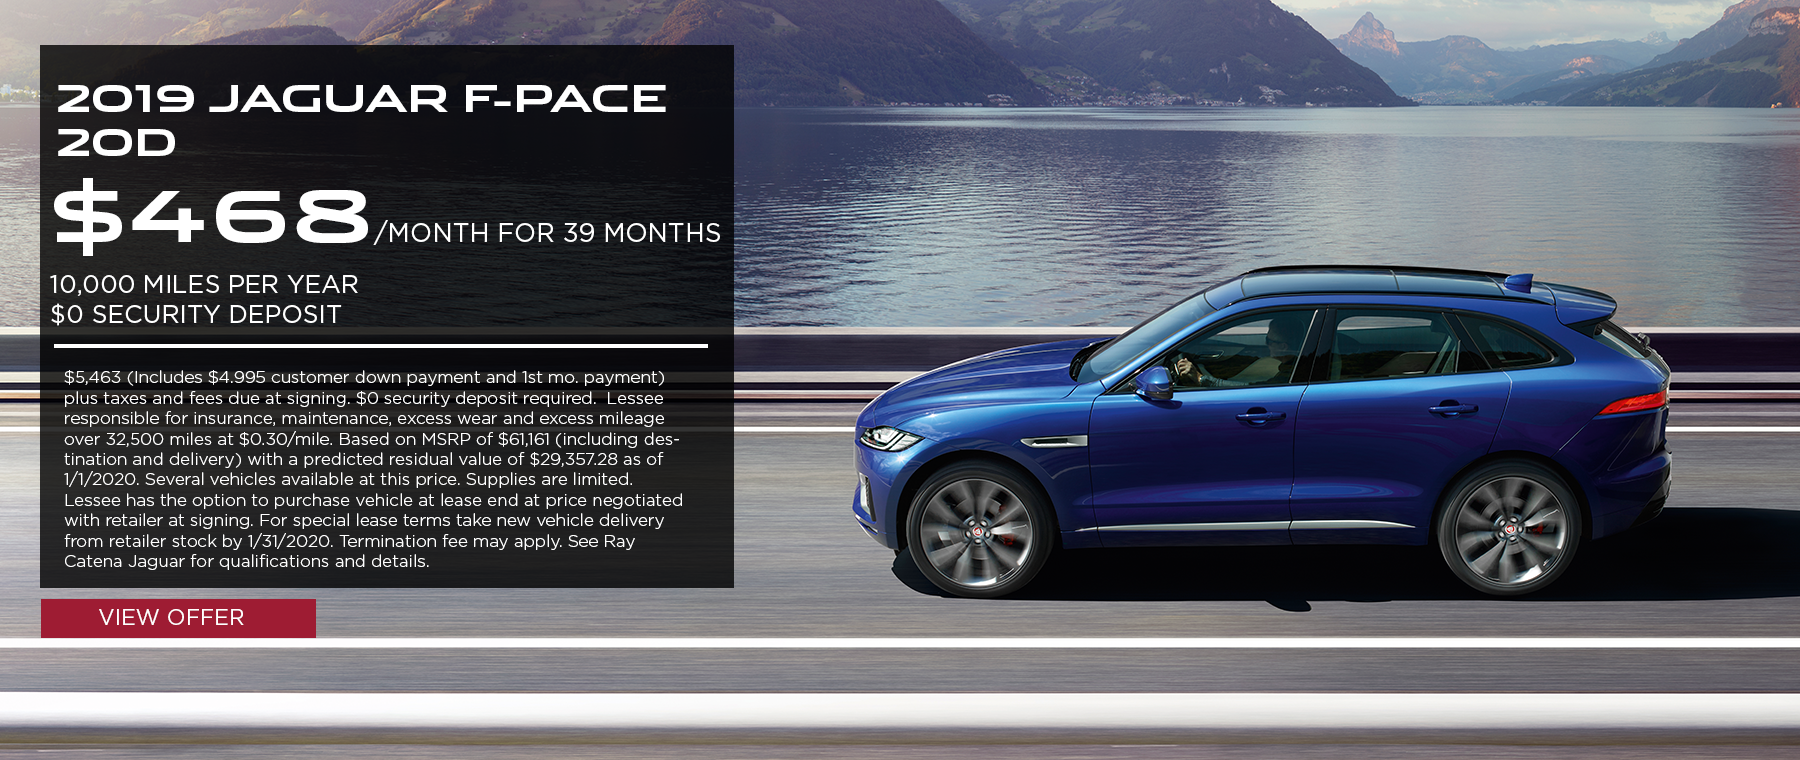 2019 Jaguar F-PACE 20d· $468/mo. · 39 mos. · 10,000 miles per year  $5,463 (Includes $4.995 customer down payment and 1st mo. payment) plus taxes and fees due at signing. $0 security deposit required.  Lessee responsible for insurance, maintenance, excess wear and excess mileage over 32,500 miles at $0.30/mile. Based on MSRP of $61,161 (including destination and delivery) with a predicted residual value of $29,357.28 as of 1/1/2020. Several vehicles available at this price. Supplies are limited. Lessee has the option to purchase vehicle at lease end at price negotiated with retailer at signing. For special lease terms take new vehicle delivery from retailer stock by 1/31/2020. Termination fee may apply. See Ray Catena Jaguar for qualifications and details.  Click to view offer. Blue F-PACE on highway with lake and mountains in the background.